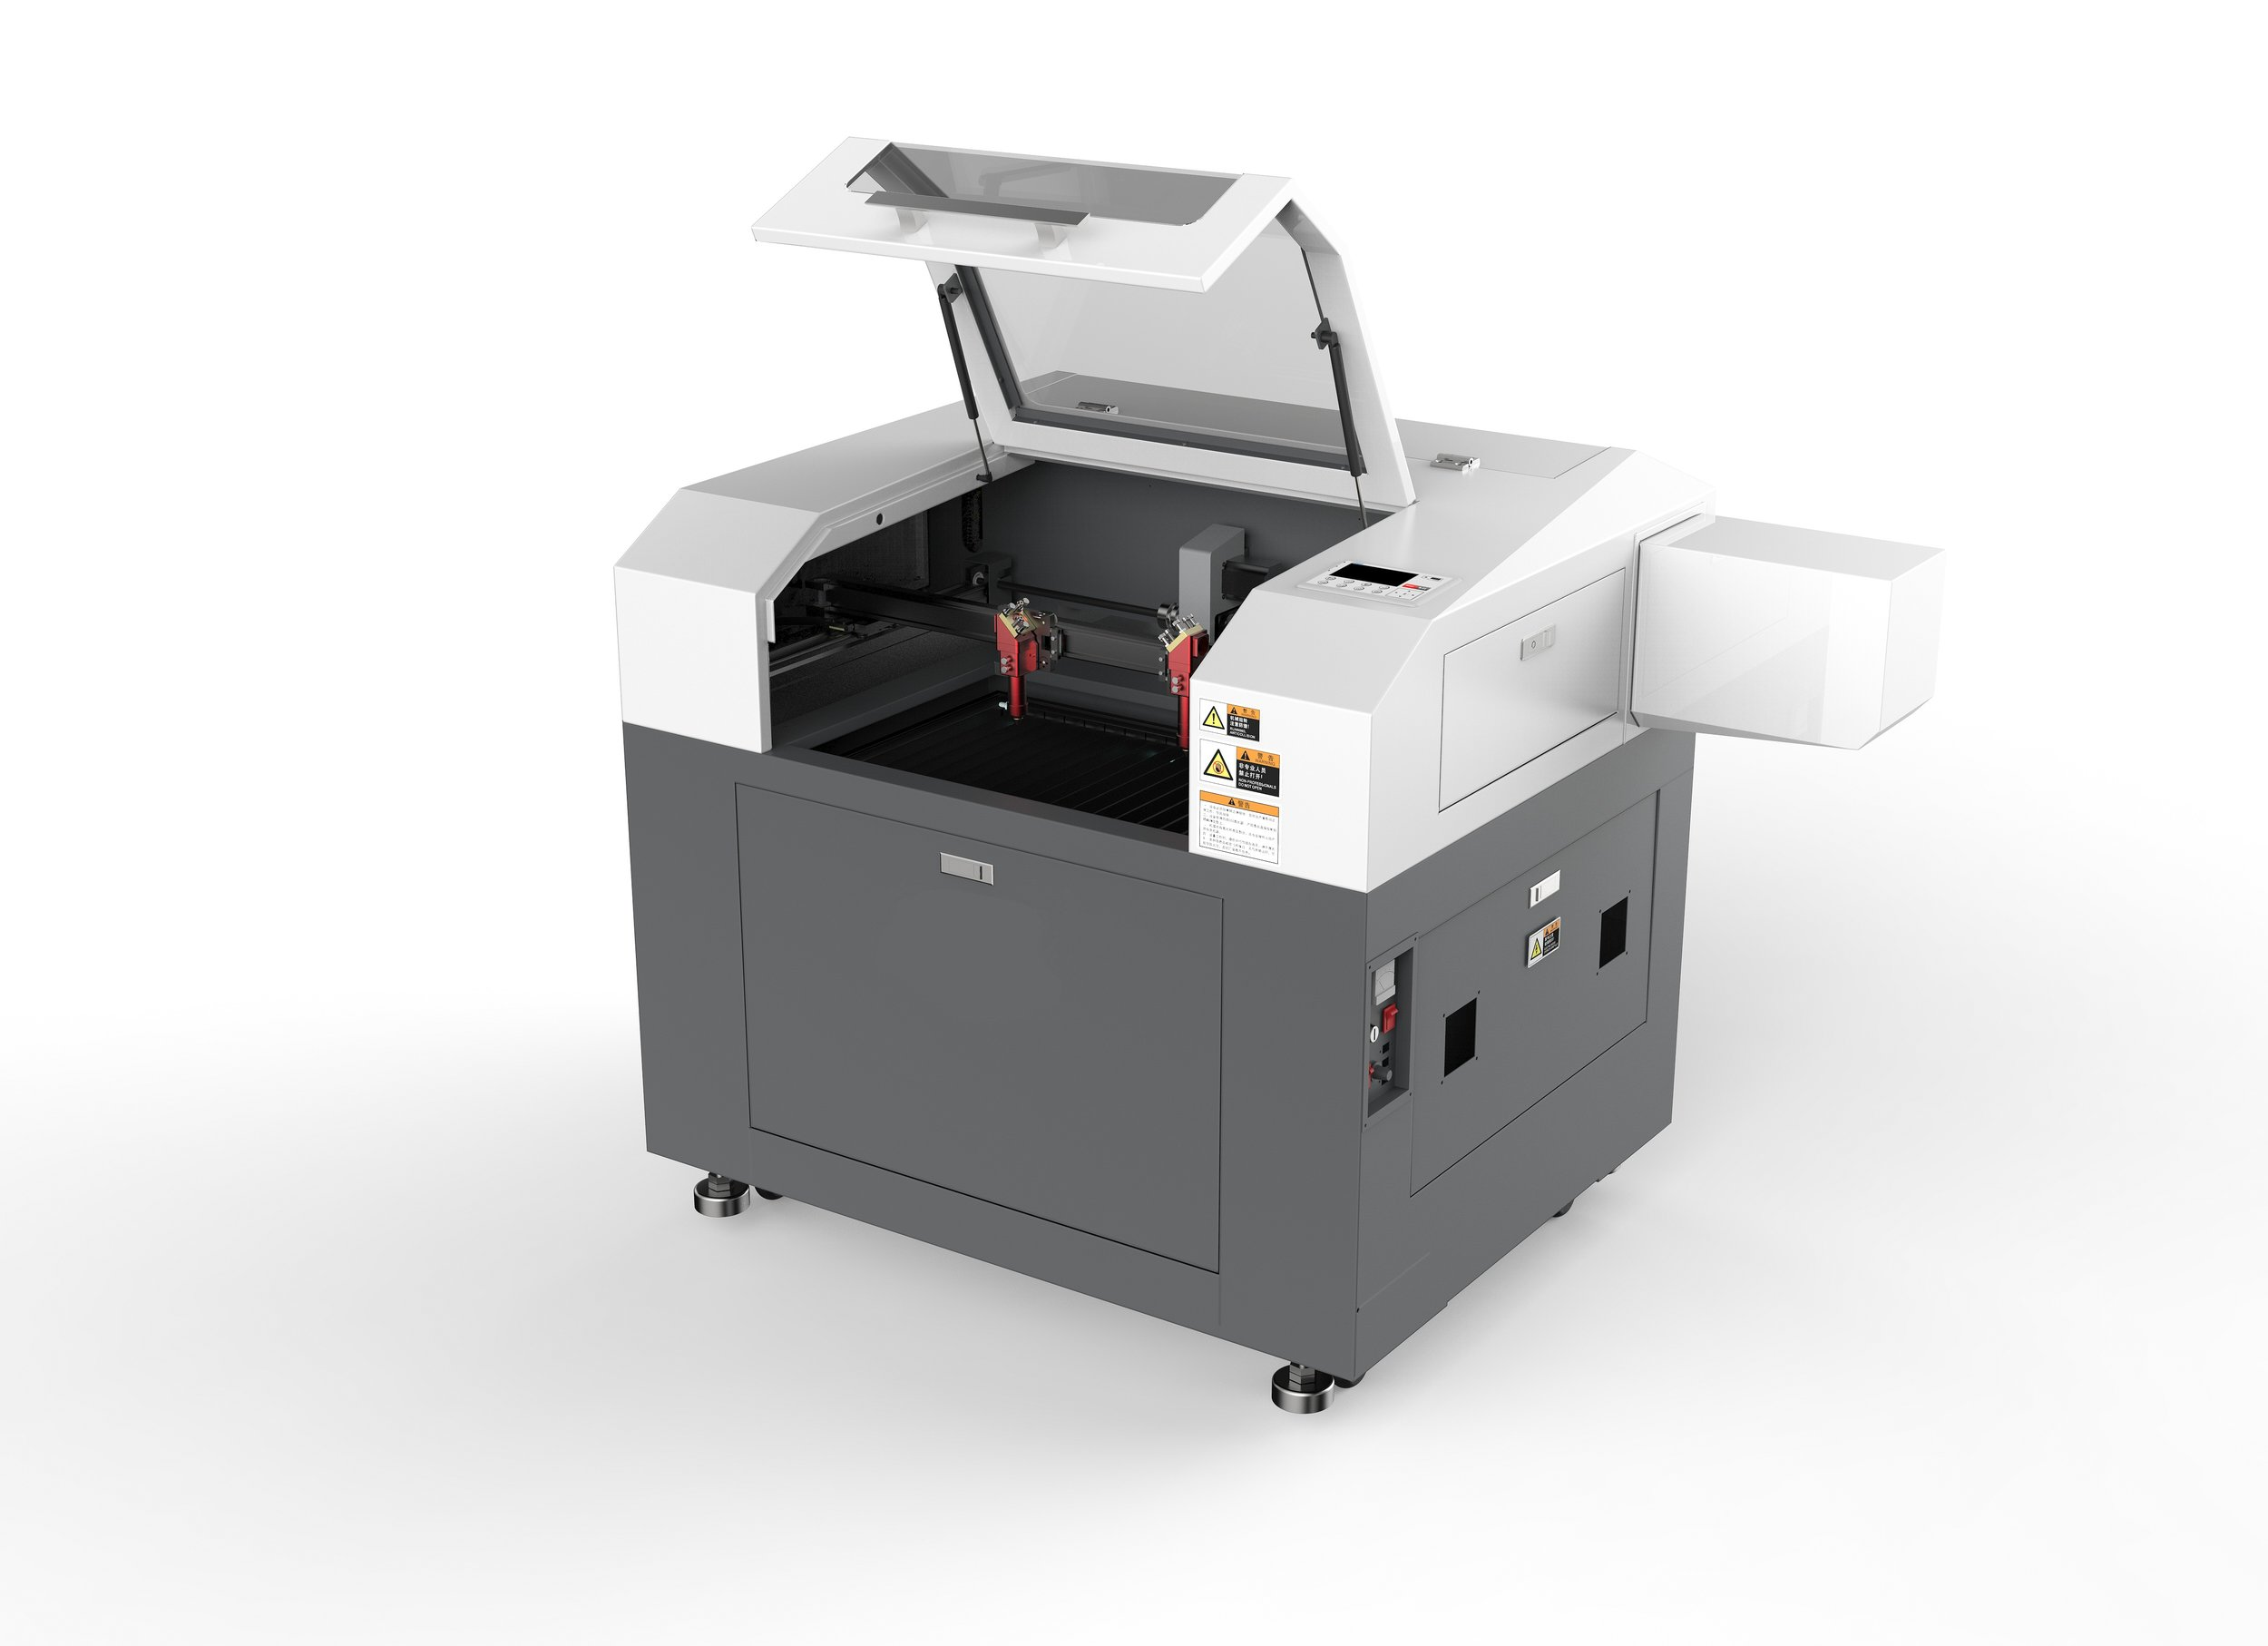 SP-6004 - is our smallest stand alone CO2 laser . Perfect for small sized business, engraving or prototyping. Equipped with the best quality components, the SP-6004 can cut and engrave at high speeds with high-resolution.A full colour display allows you to see and interact with the machine and your designs while they are being processed via the live feedback feature of the machine.